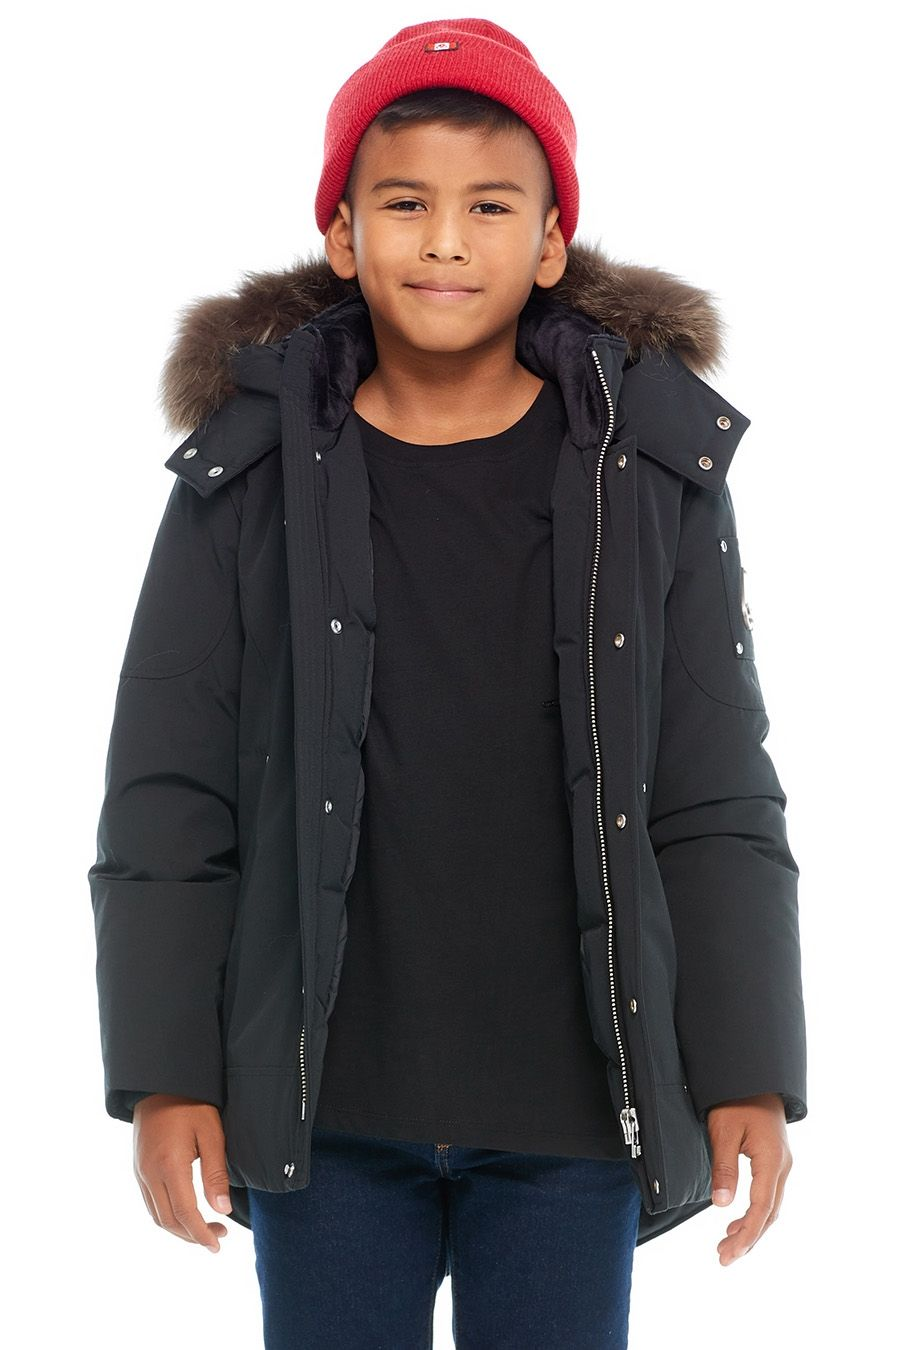 Moose Knuckles Unisex Fox Fur Parka